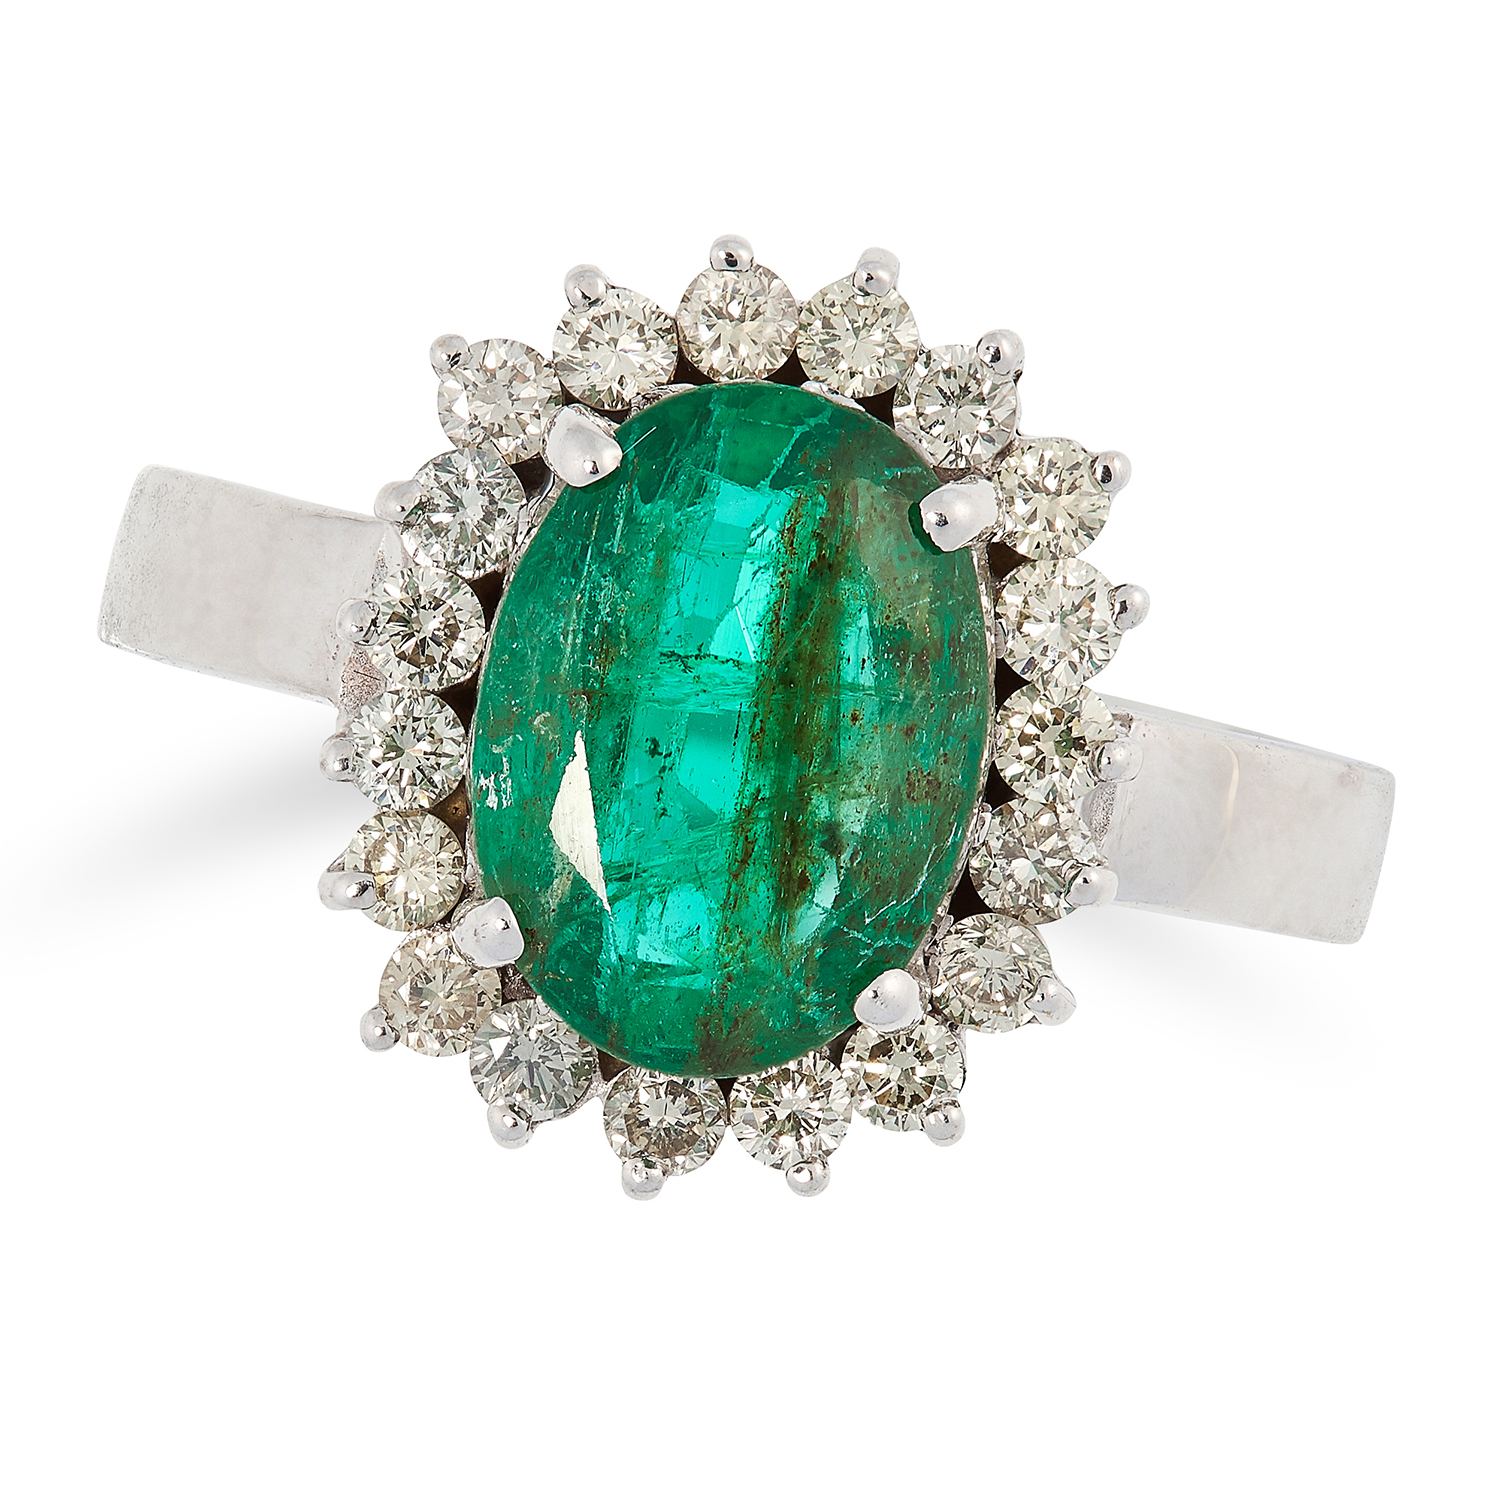 EMERALD AND DIAMOND CLUSTER RING set with an oval cut emerald in a cluster of round cut diamonds, si